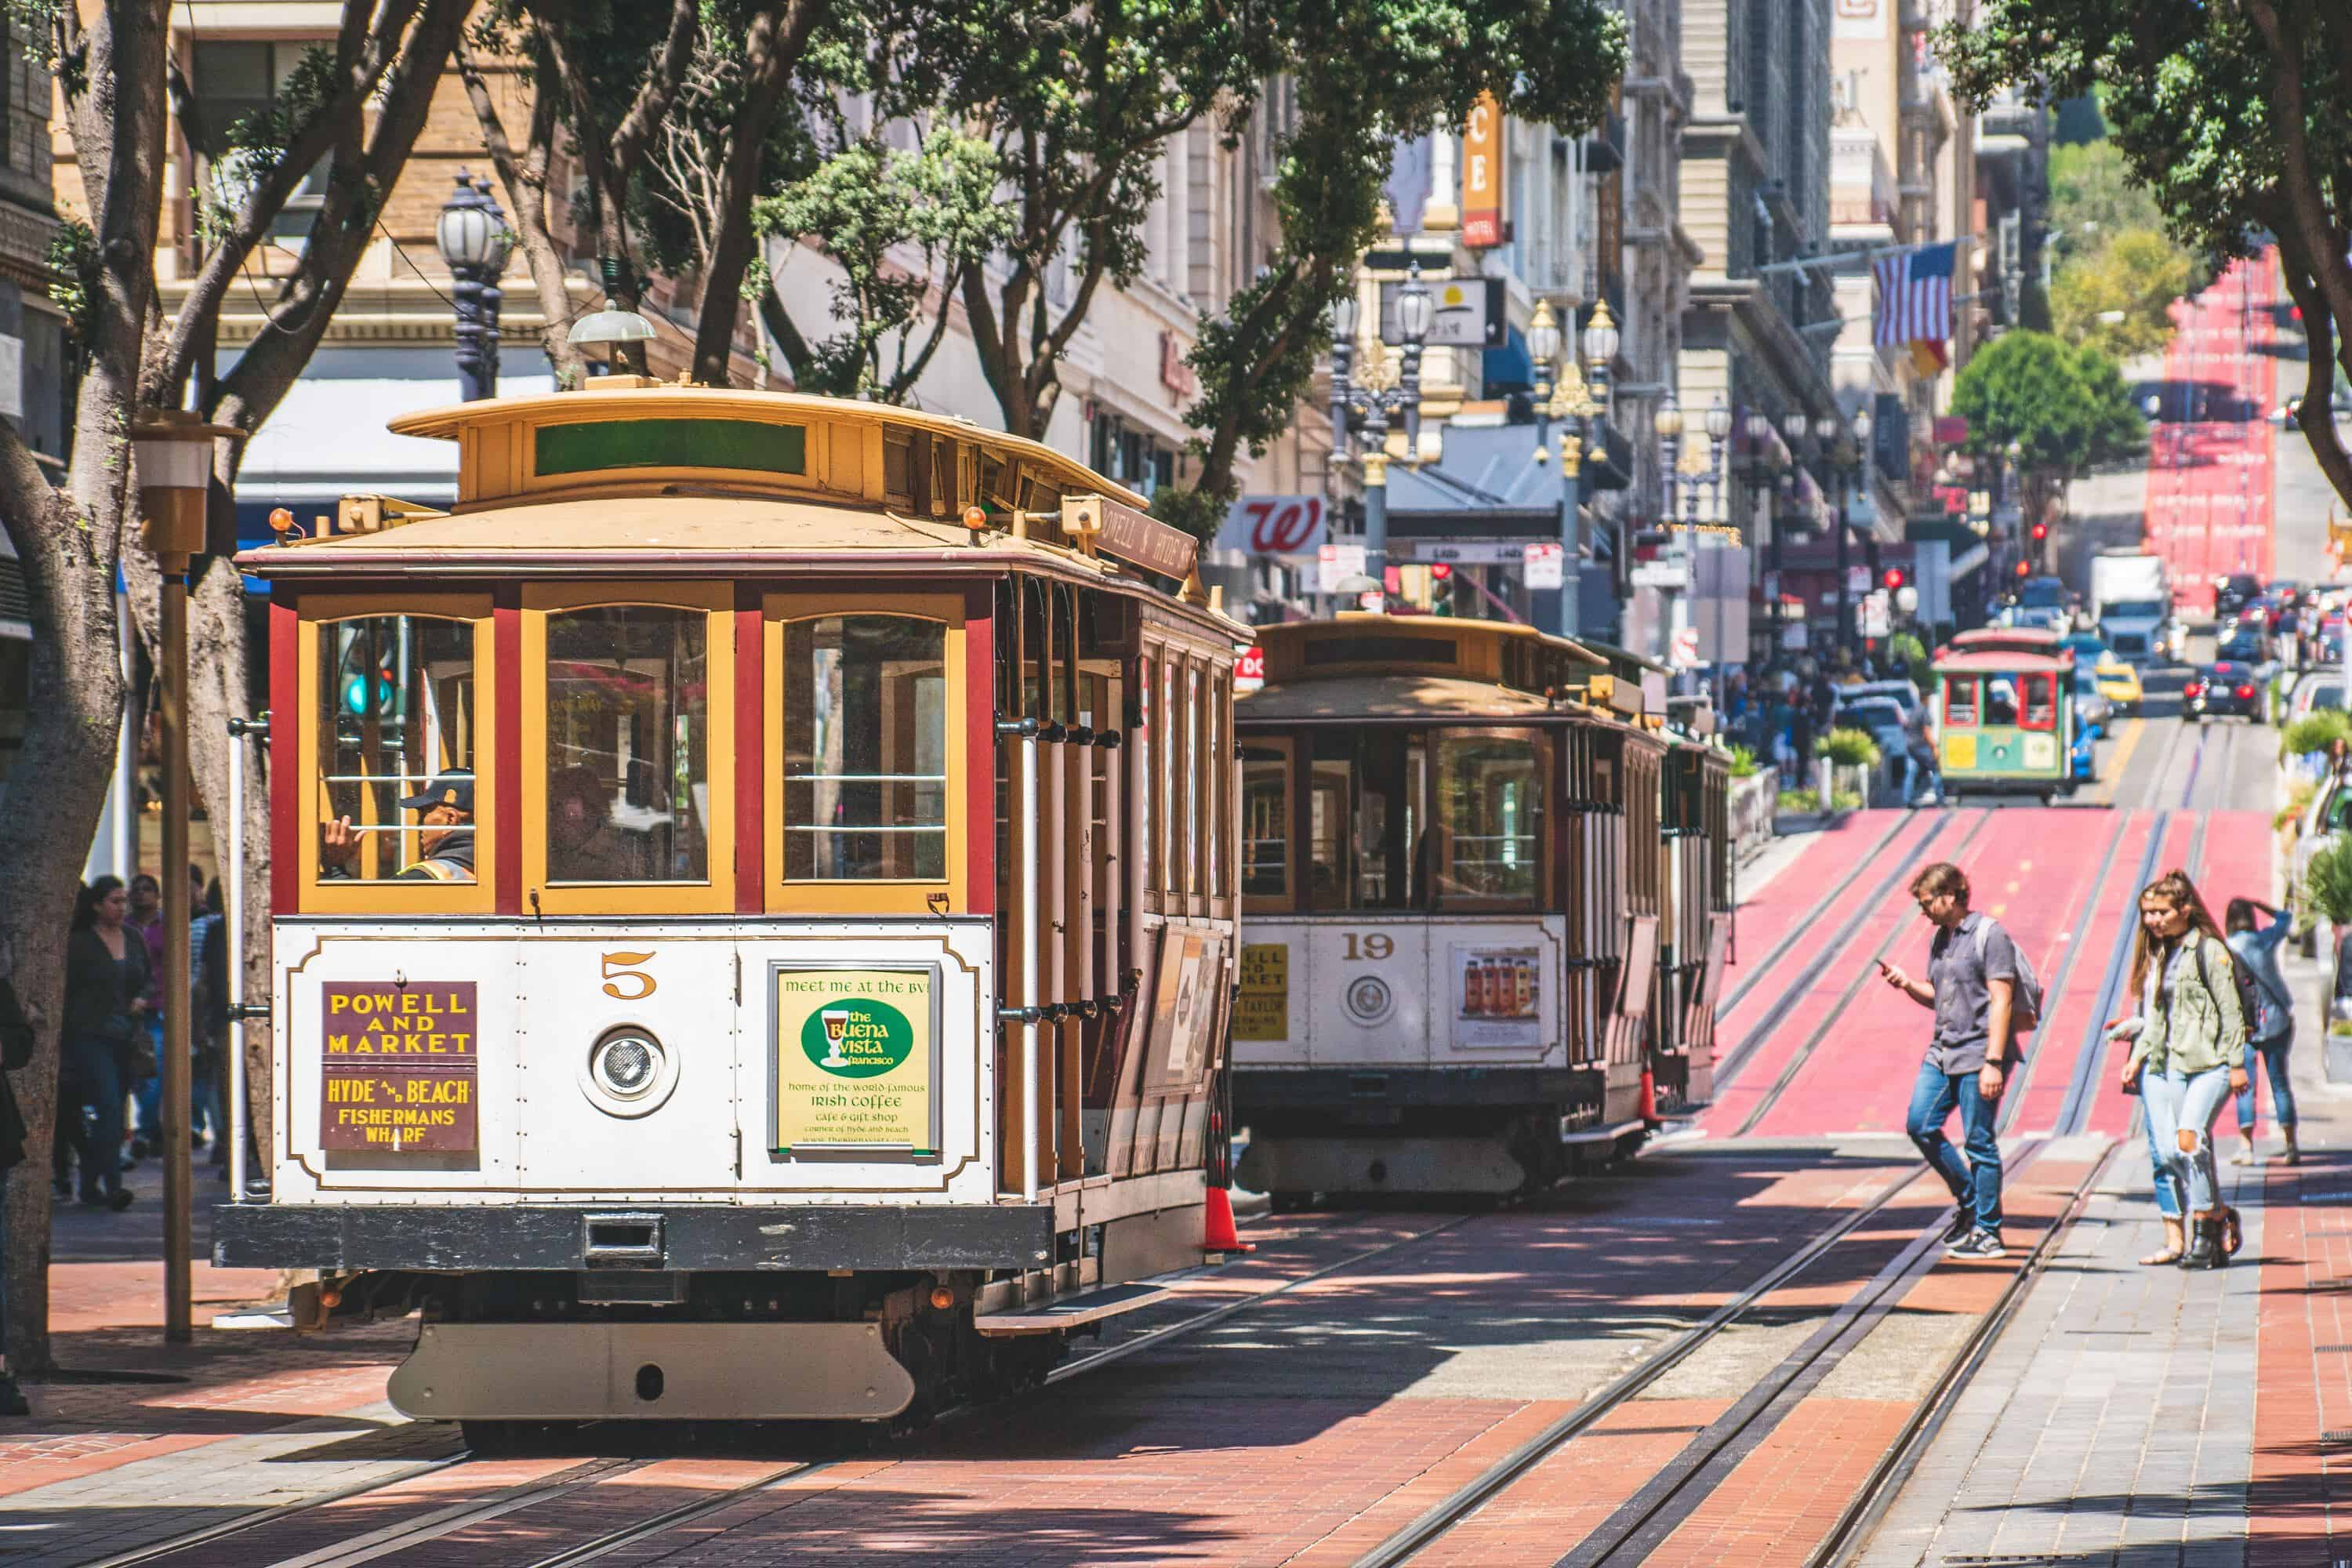 Powell and Market trolley climbing hill in San Francisco.